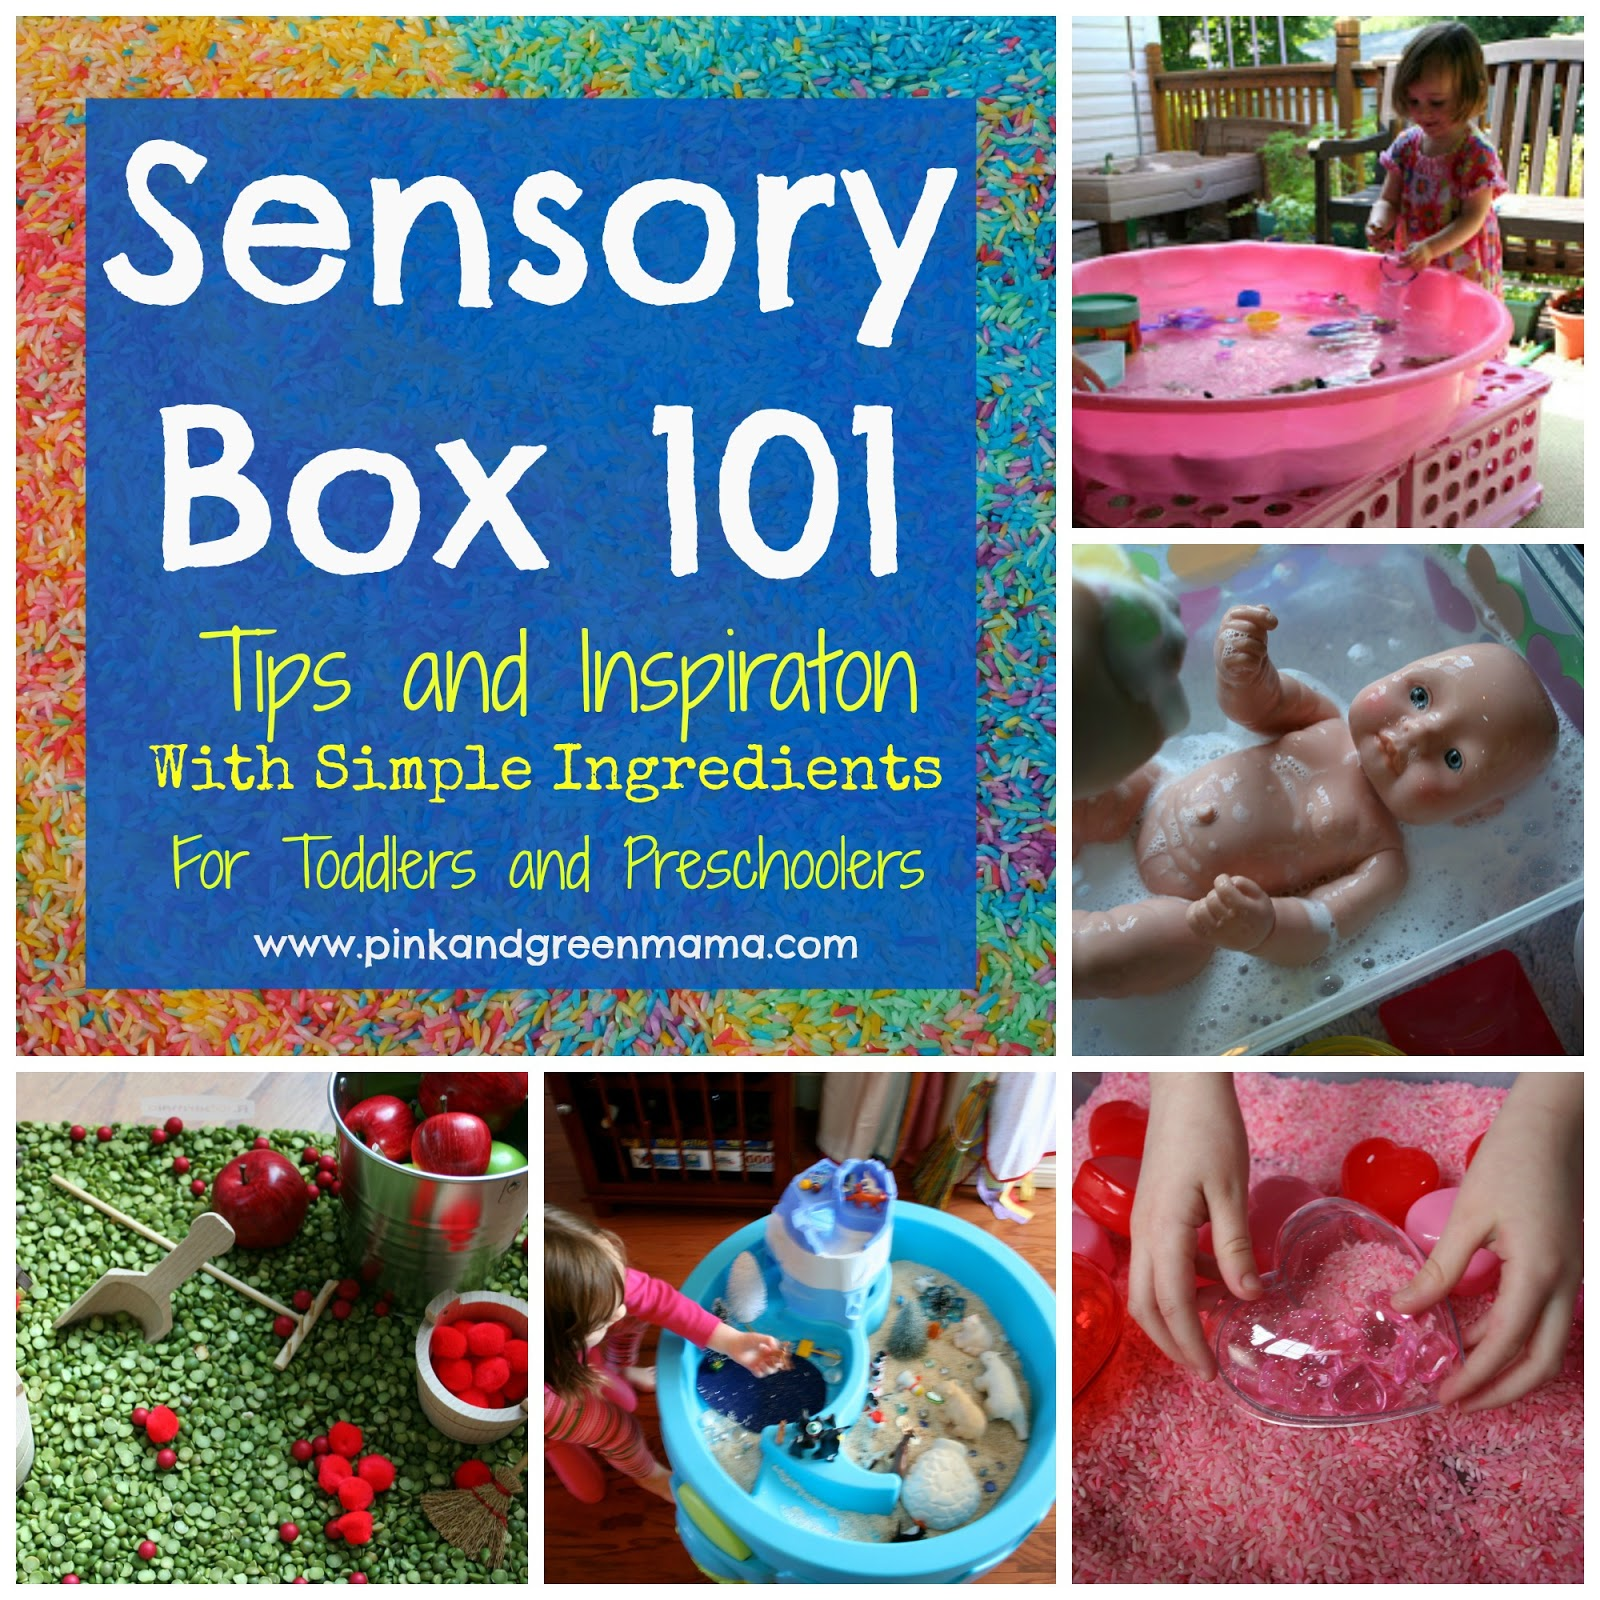 Today S Hint 7 Affordable Activity Ideas For First: Pink And Green Mama: * Sensory Boxes 101 Tips And